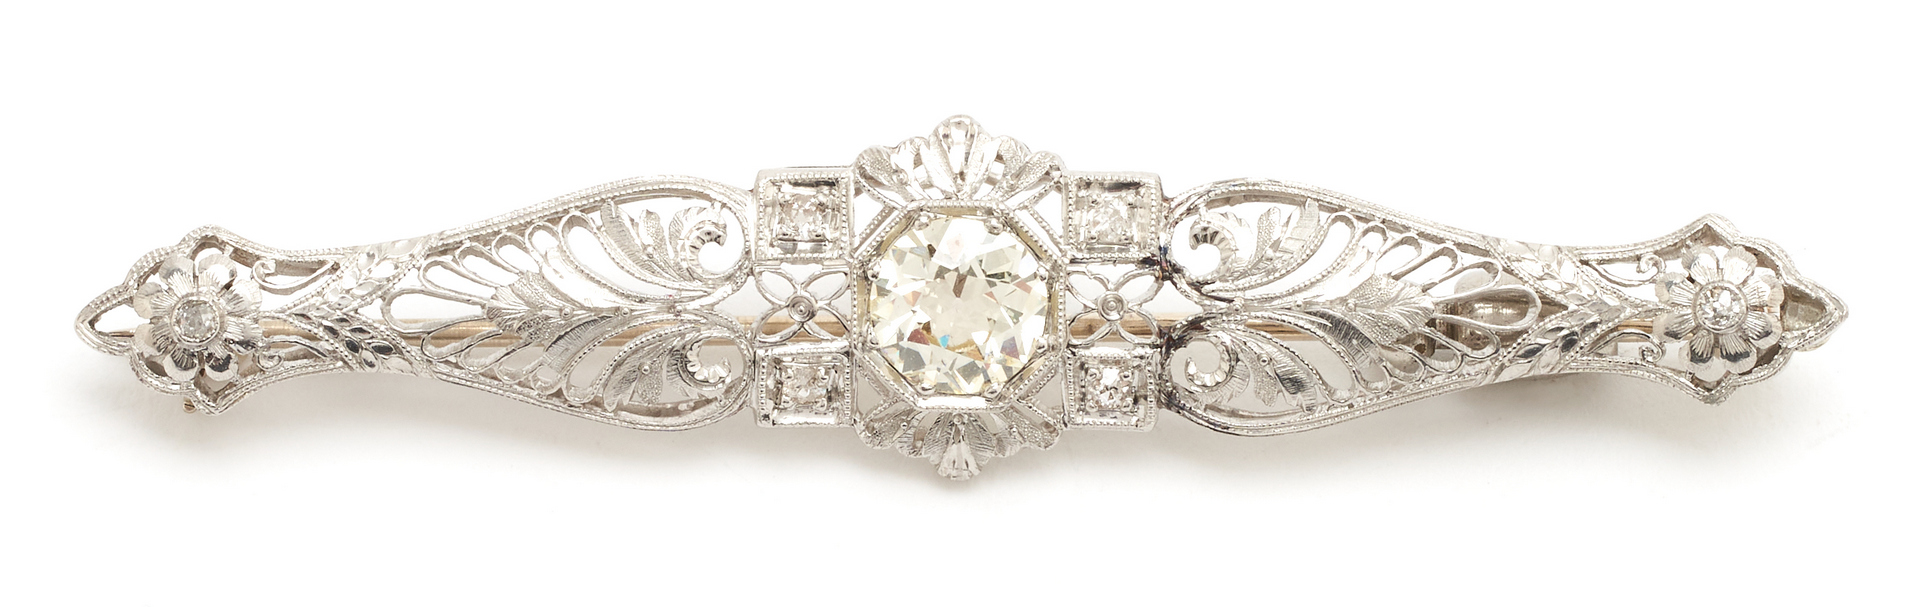 Lot 62: Art Deco Diamond brooch with 1.26 ct old Euro cut